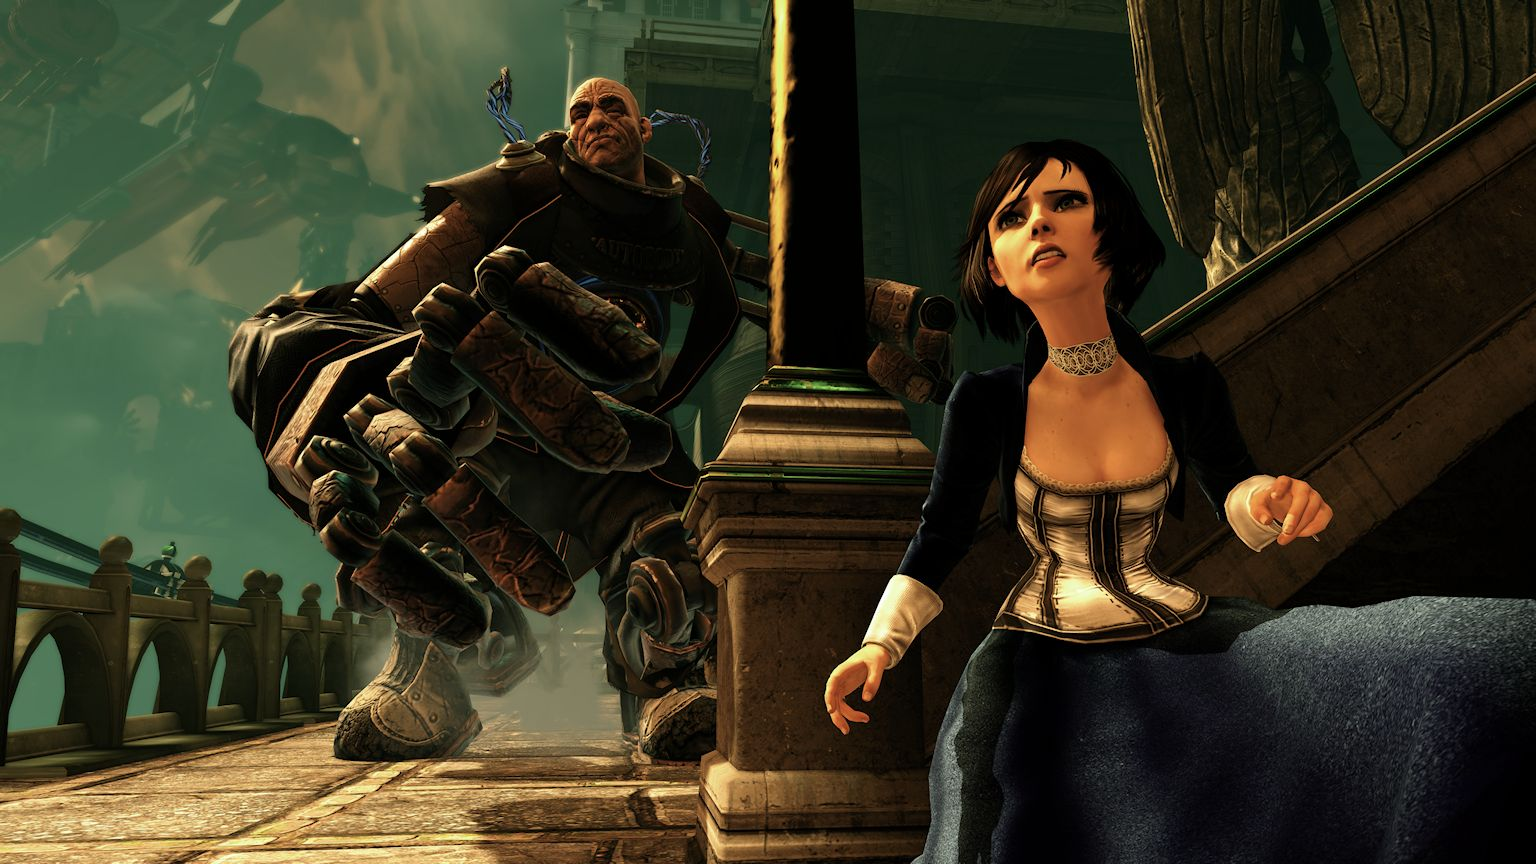 BioShock Infinite (PS3) – sky high ambition